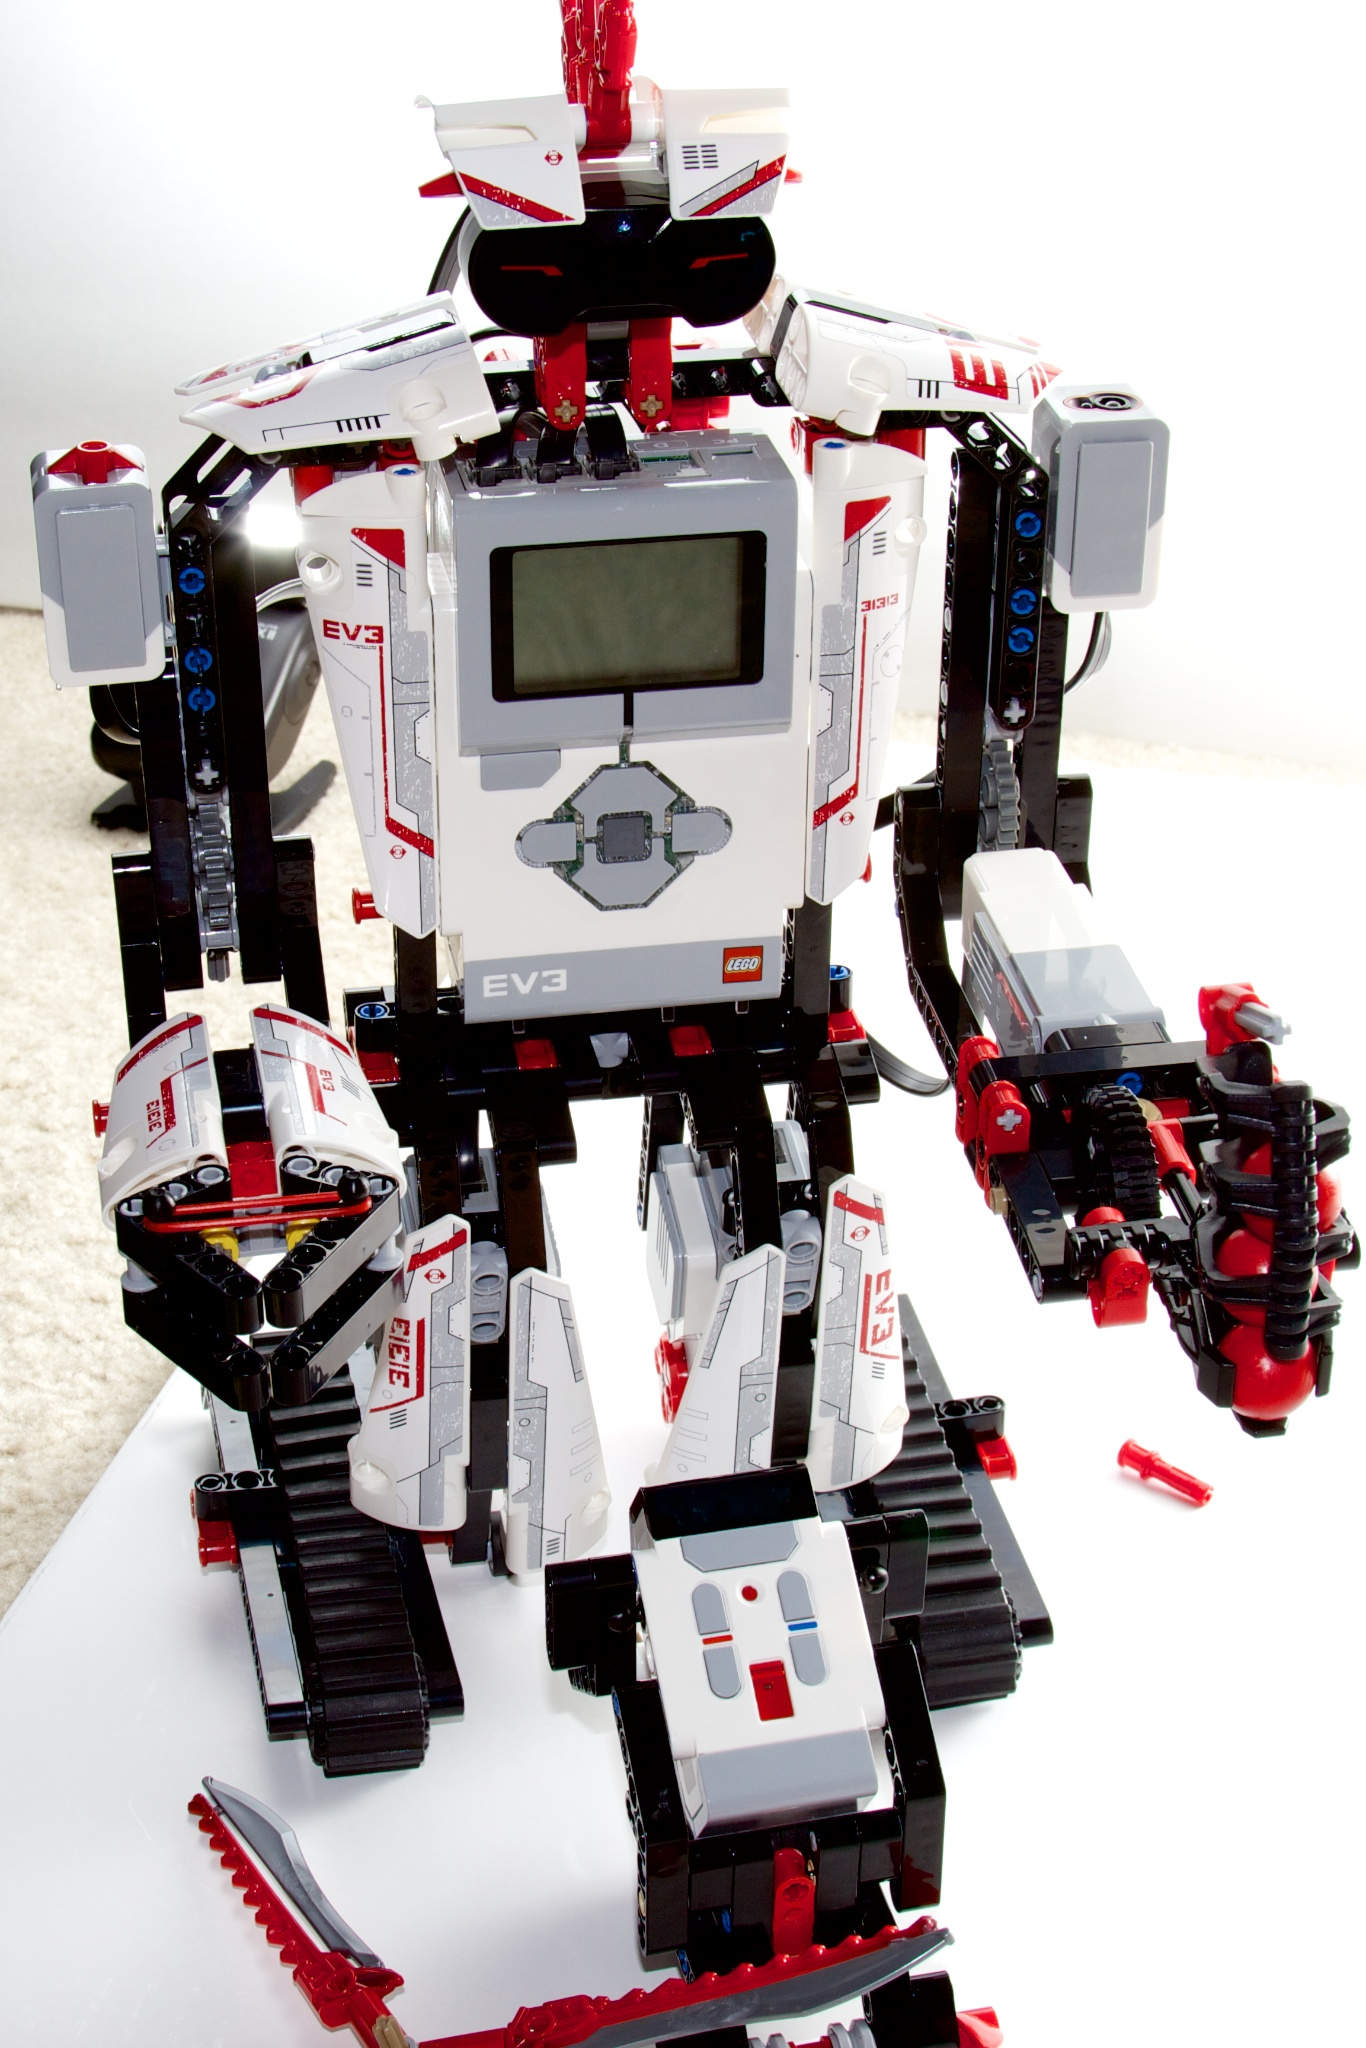 Review: Lego Mindstorms EV3 means giant robots, powerful computers